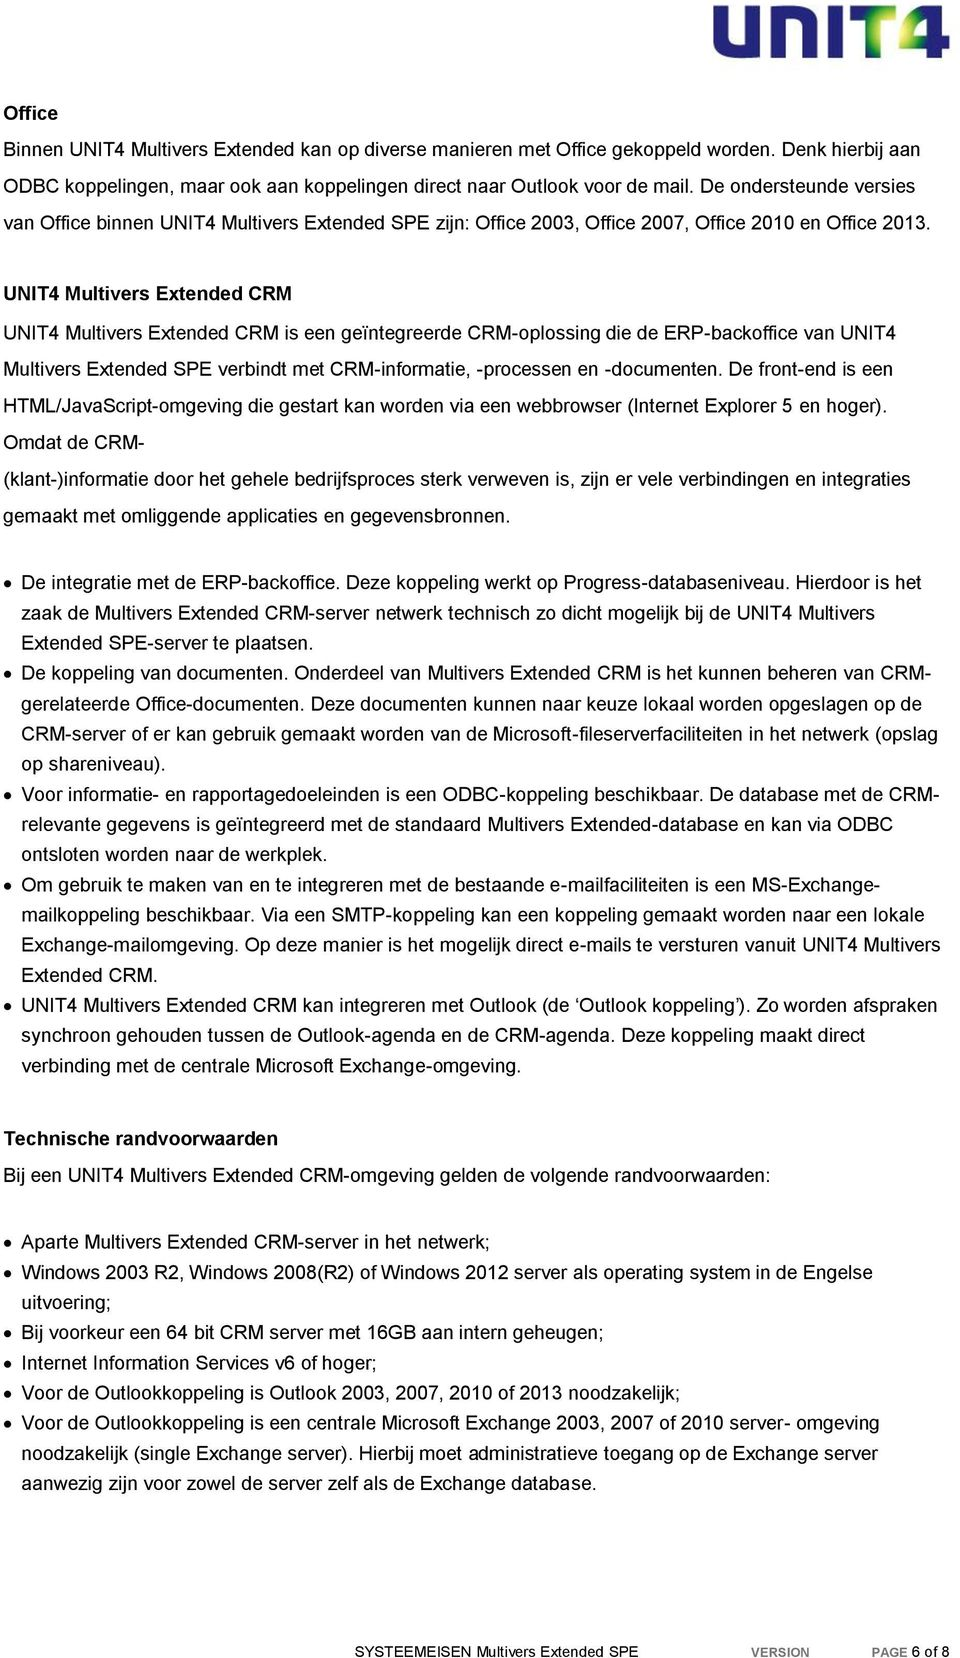 UNIT4 Multivers Extended CRM UNIT4 Multivers Extended CRM is een geïntegreerde CRM-oplossing die de ERP-backoffice van UNIT4 Multivers Extended SPE verbindt met CRM-informatie, -processen en